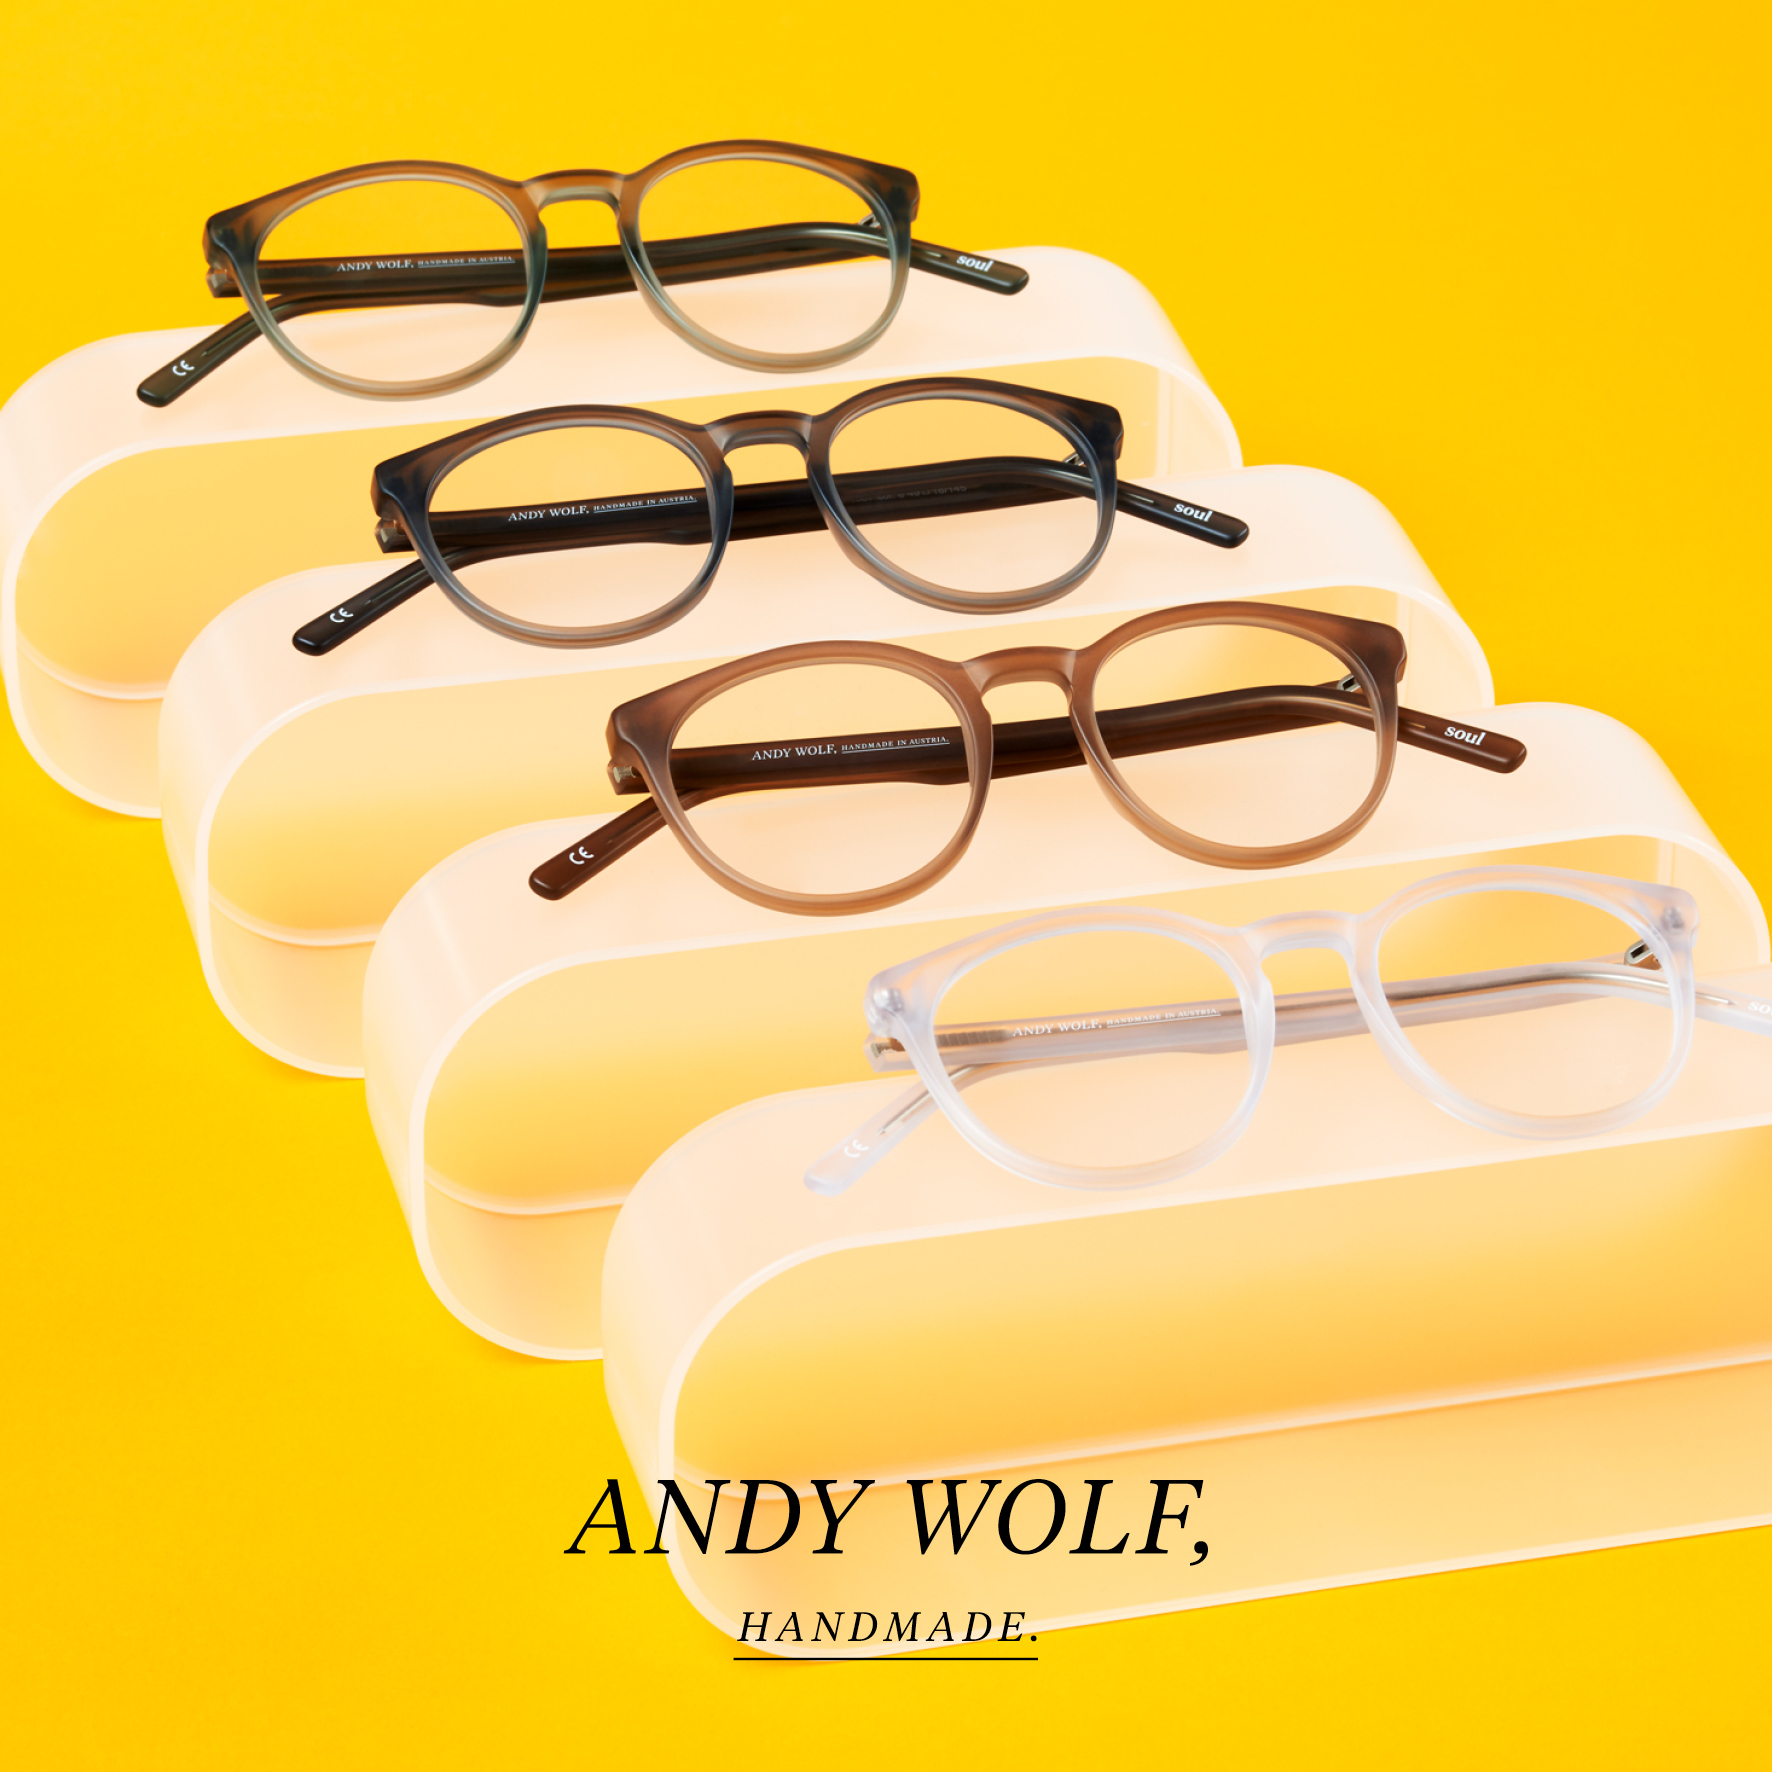 Beautiful hand made eyeglasses by Andy Wolf yellow background